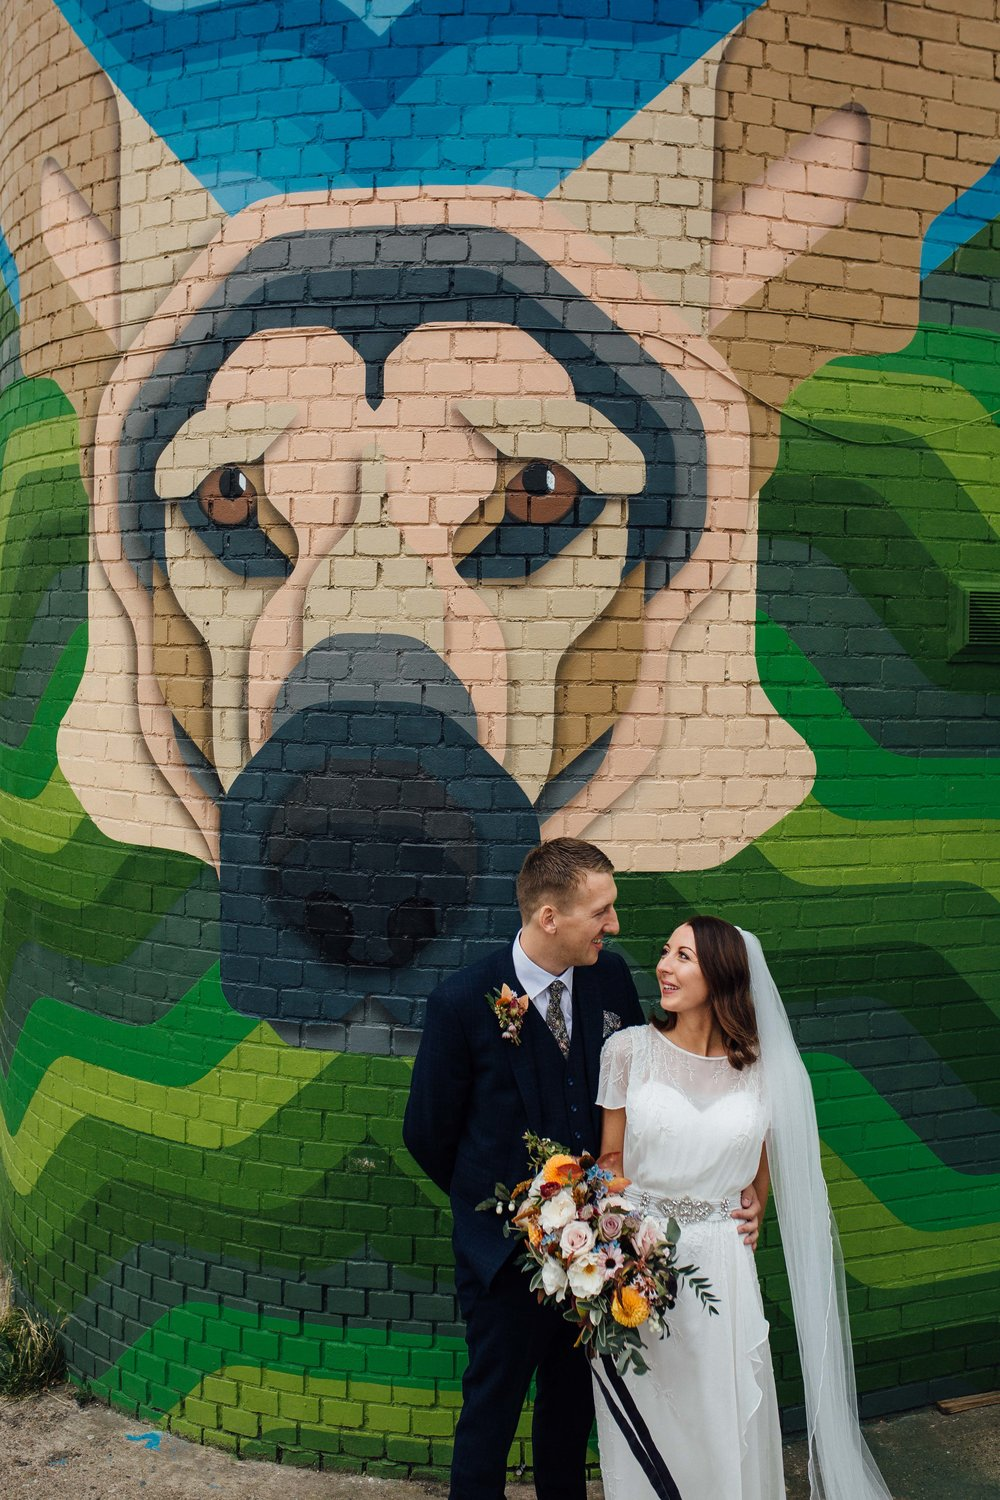 Sheffield Wedding Photographer Dogs at Weddings The Chimney House